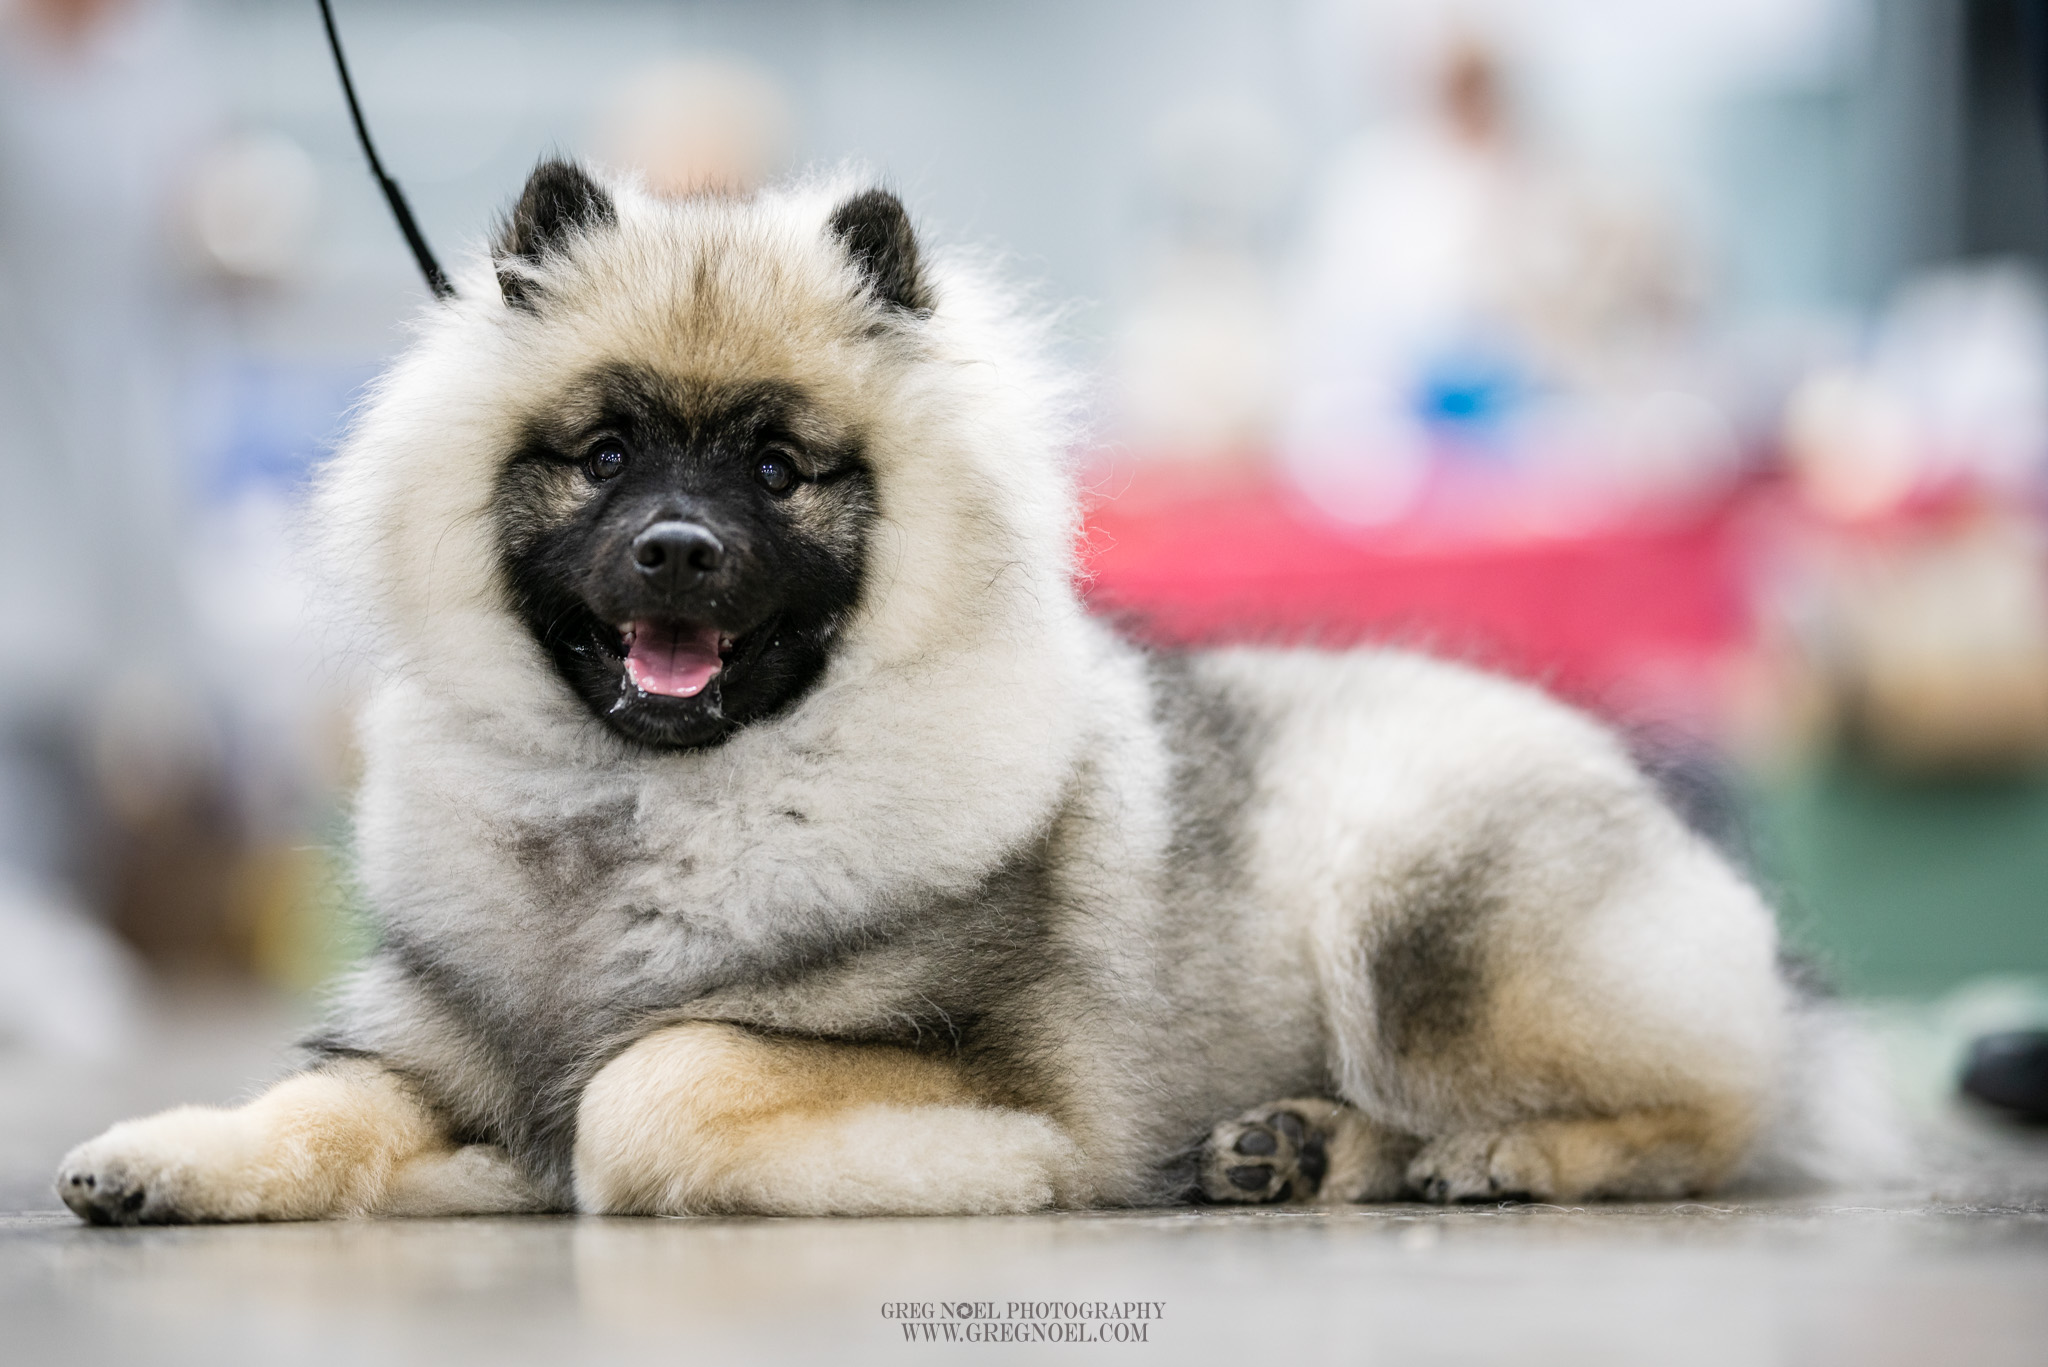 Conception Bay Kennel Club Show 2019 Candid and Ring Photos - Personal use digital downloads$10 each, 3 for $25Commercial Licence for breeders/businesses/advertising additional $60 per imagePrints also available